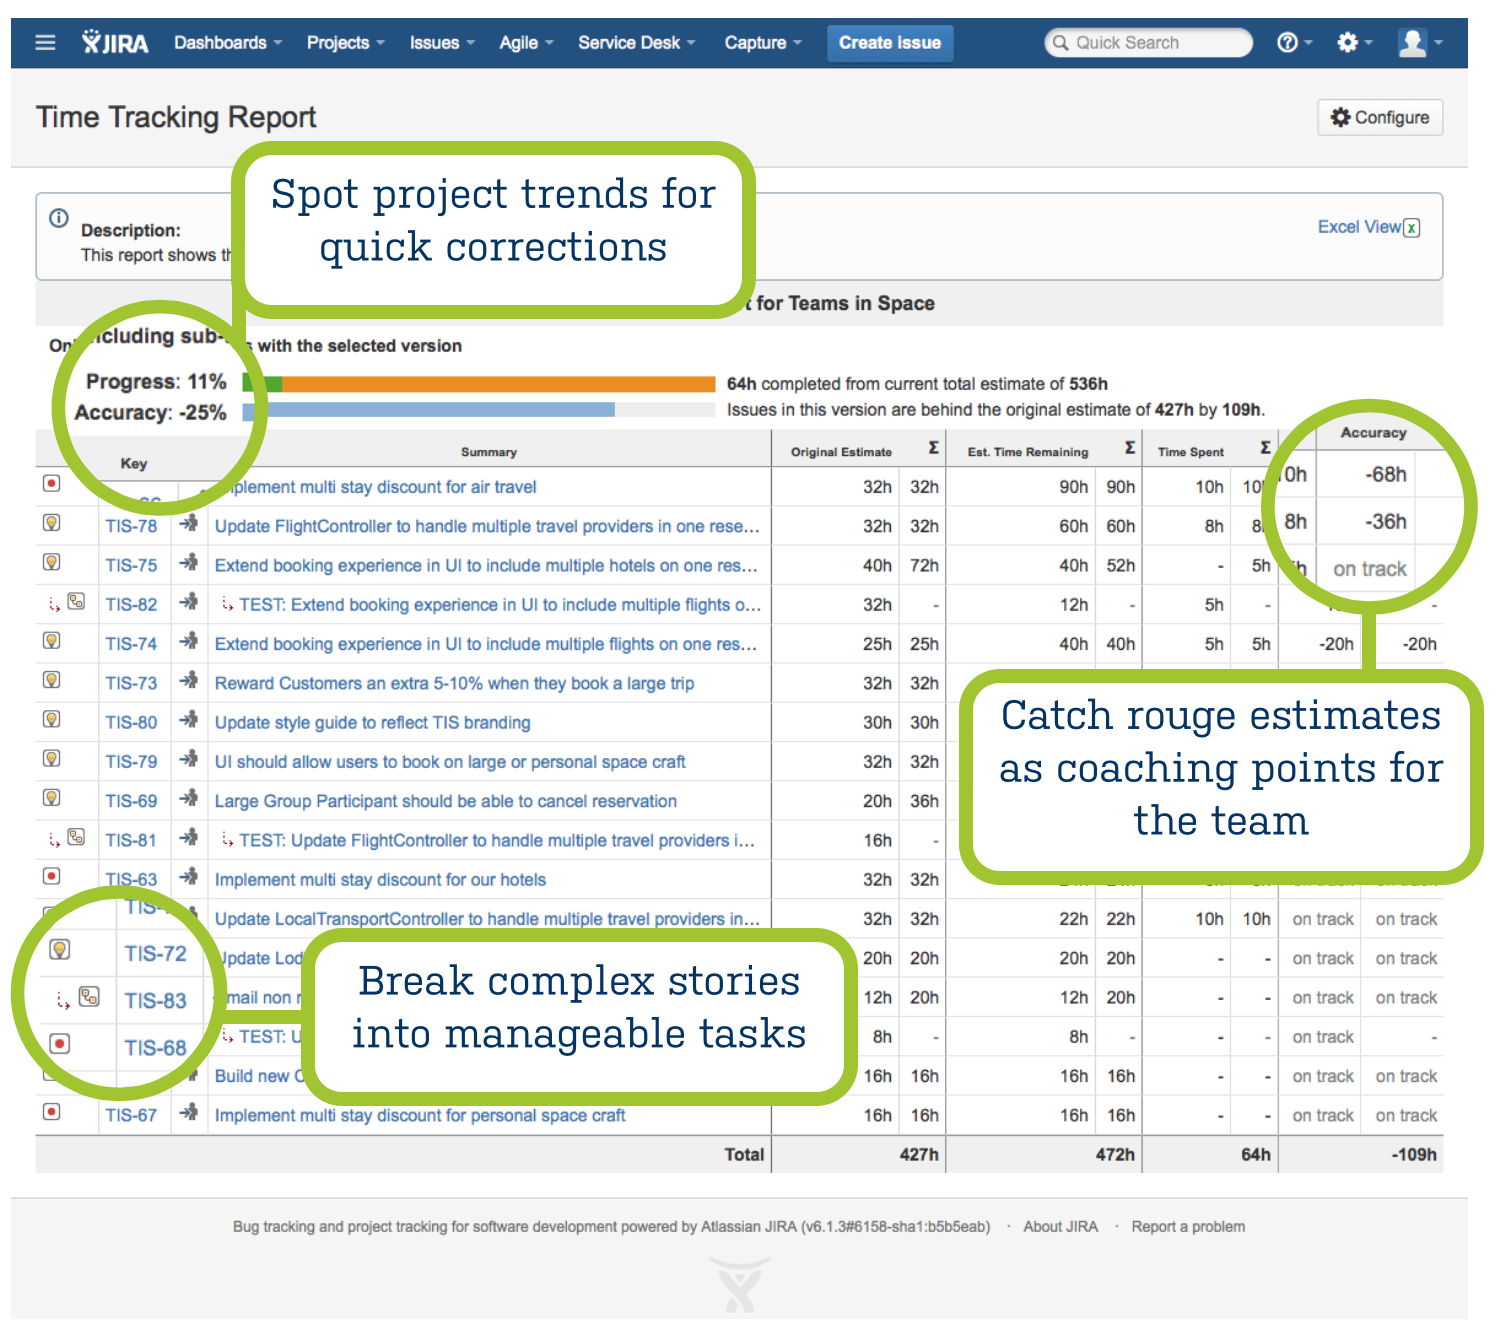 ../../_images/jira-report-timetracking-2.png